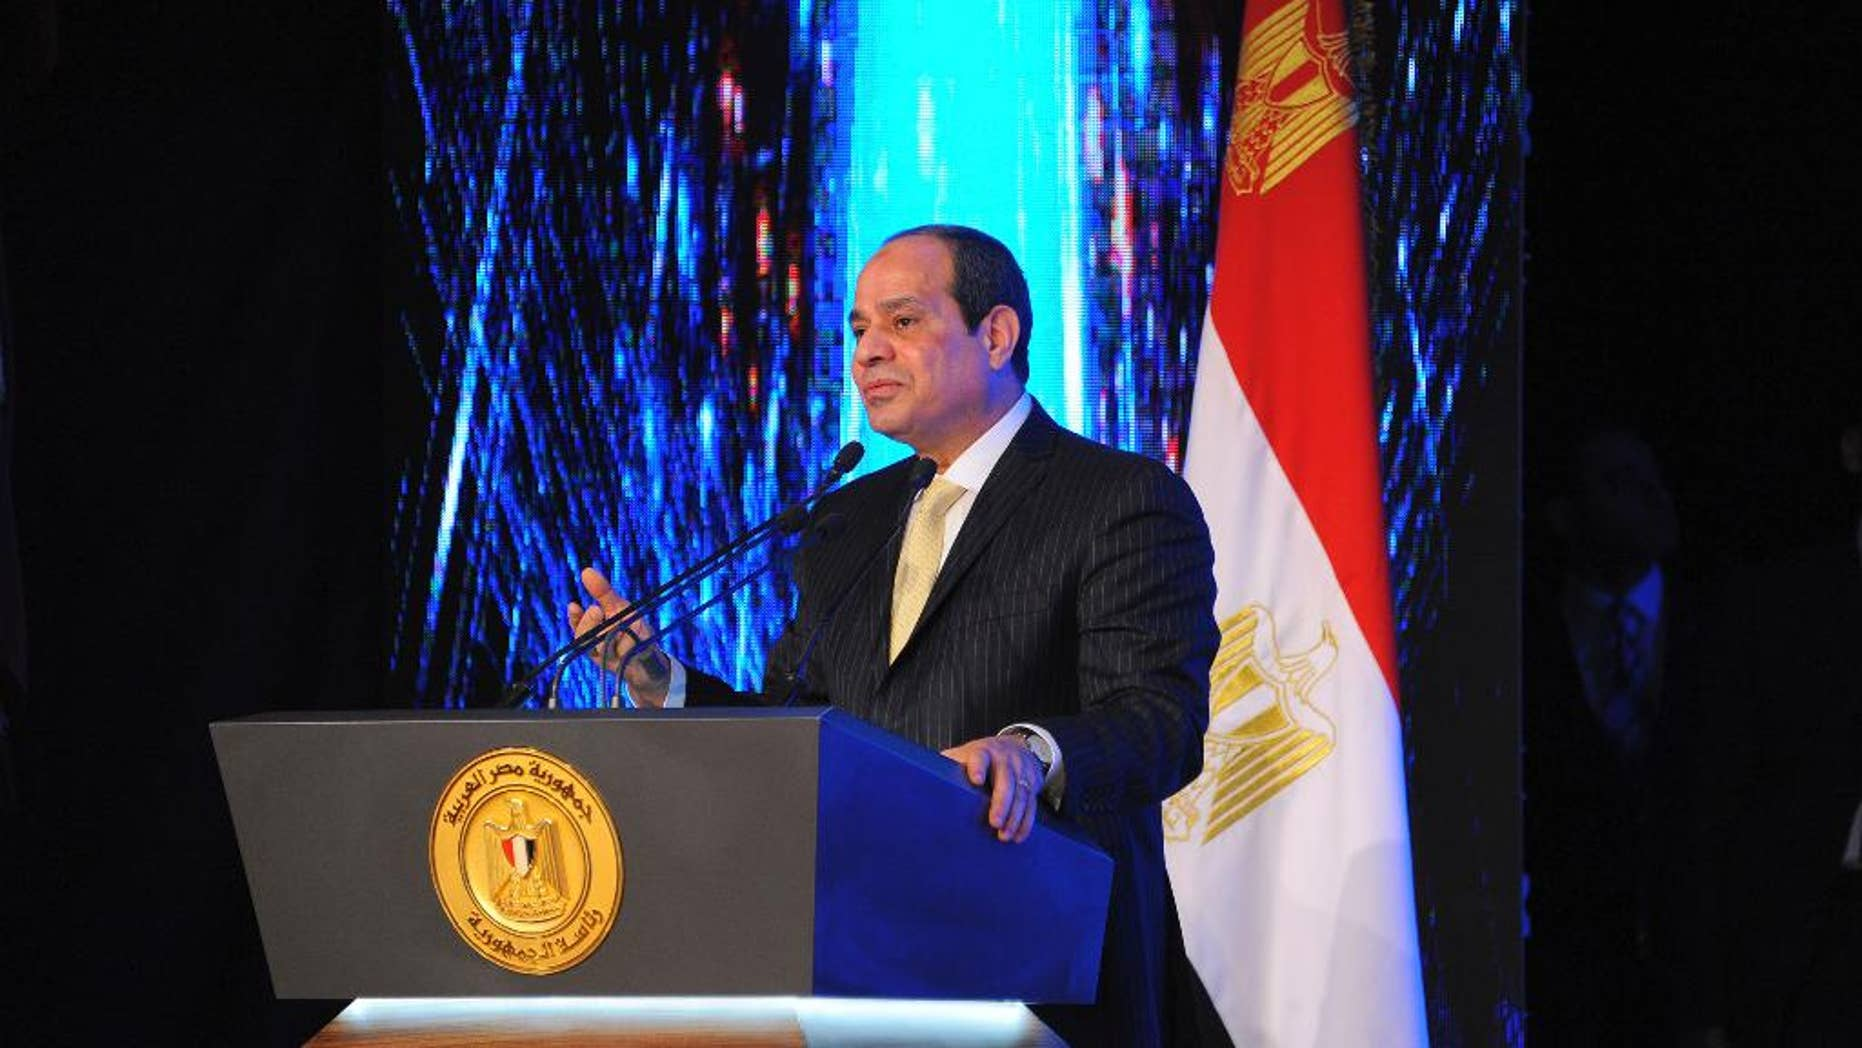 In this handout photo provided by the Egyptian presidency, President Abdel-Fatteh el-Sissi speaks during a ceremony making Police Day, at the Police Academy in an Eastern Cairo suburb, Tuesday, Jan. 24, 2017.  El-Sissi says he is alarmed by his country's high divorce rates and is suggesting ground-breaking legislation to ban Muslim husbands from verbally declaring their spouses divorced. (Egyptian Presidency via AP)